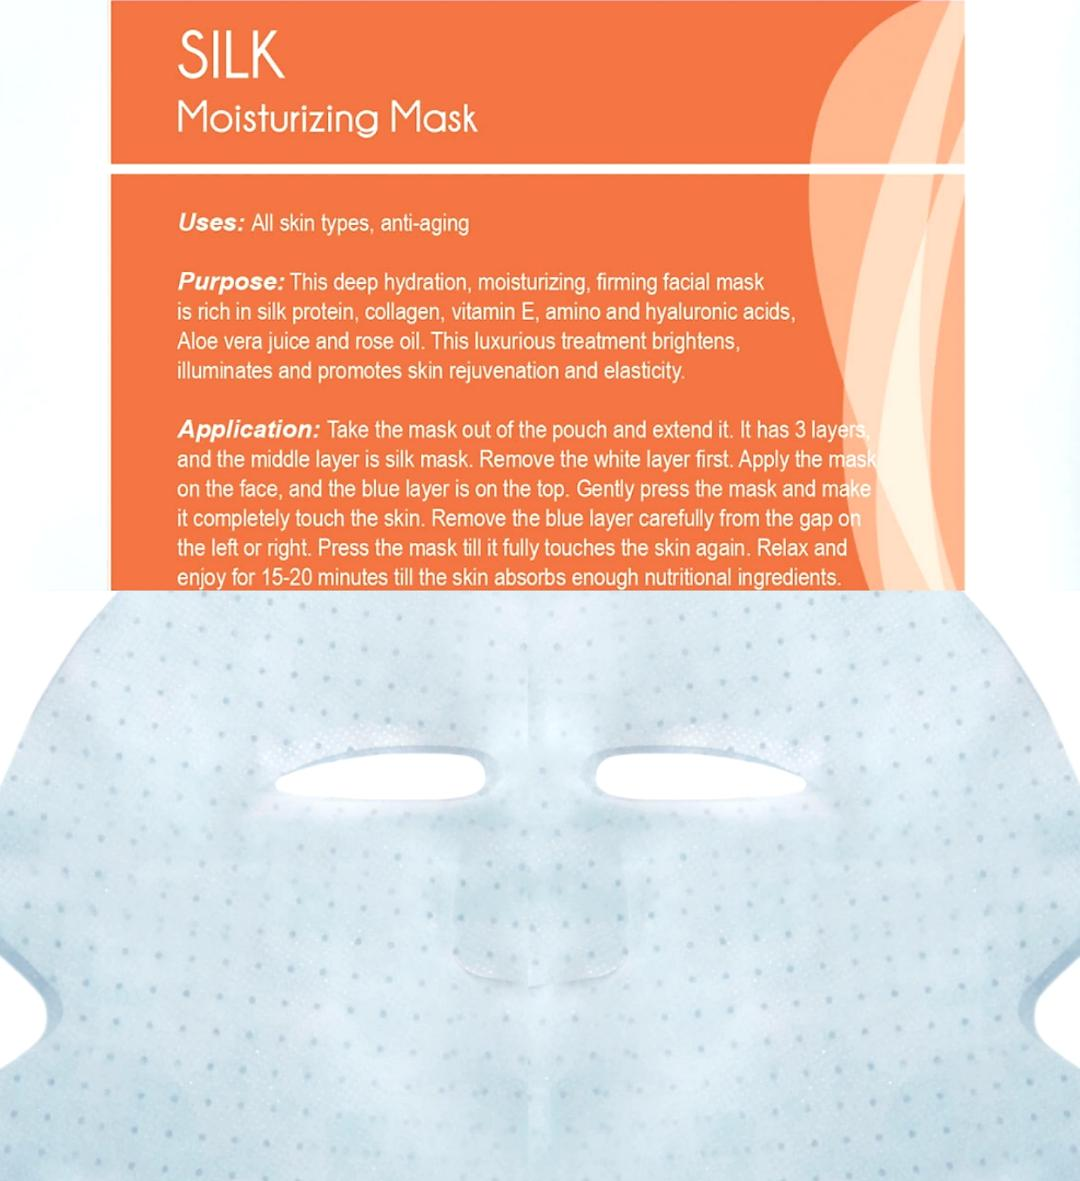 Silk Moisturizing Mask